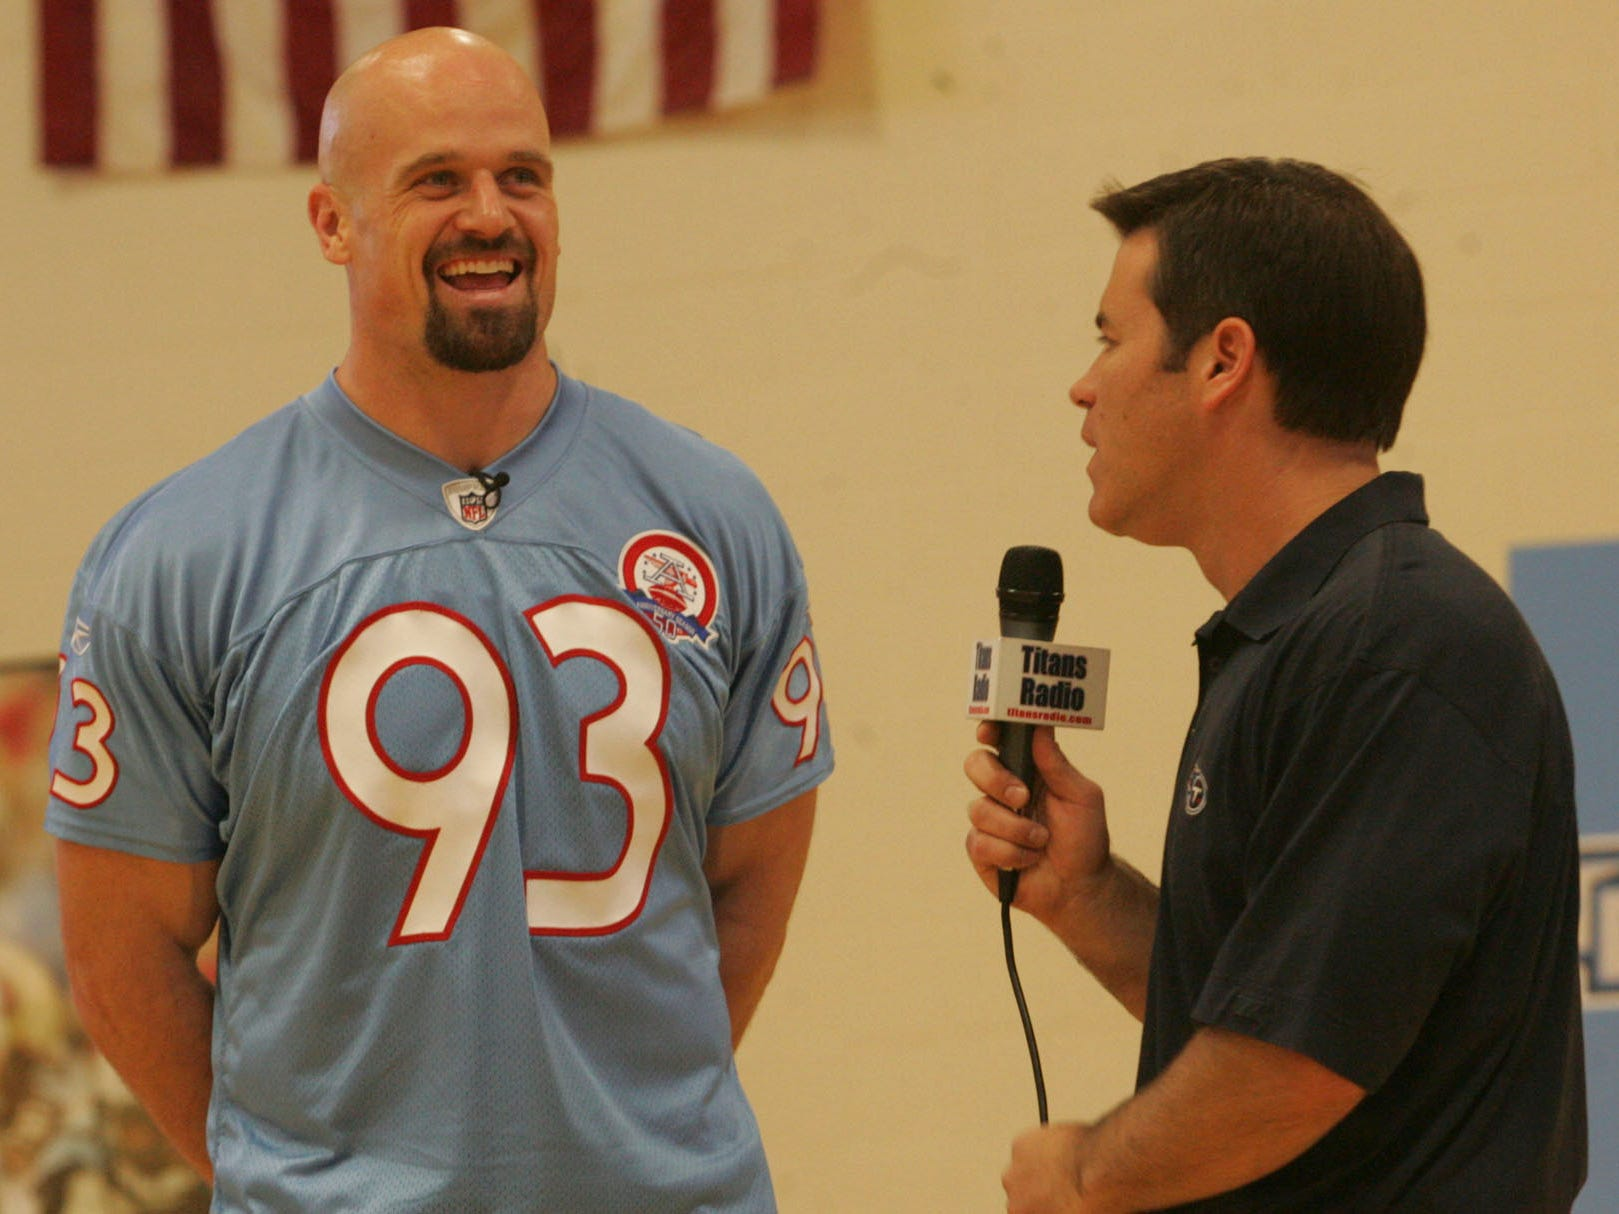 Titans player, Kyle Vanden Bosch is interviewed by Titans play by play man, Mike Keith, at Christana Middle School during the Titans caravan visit at the school in 2009.